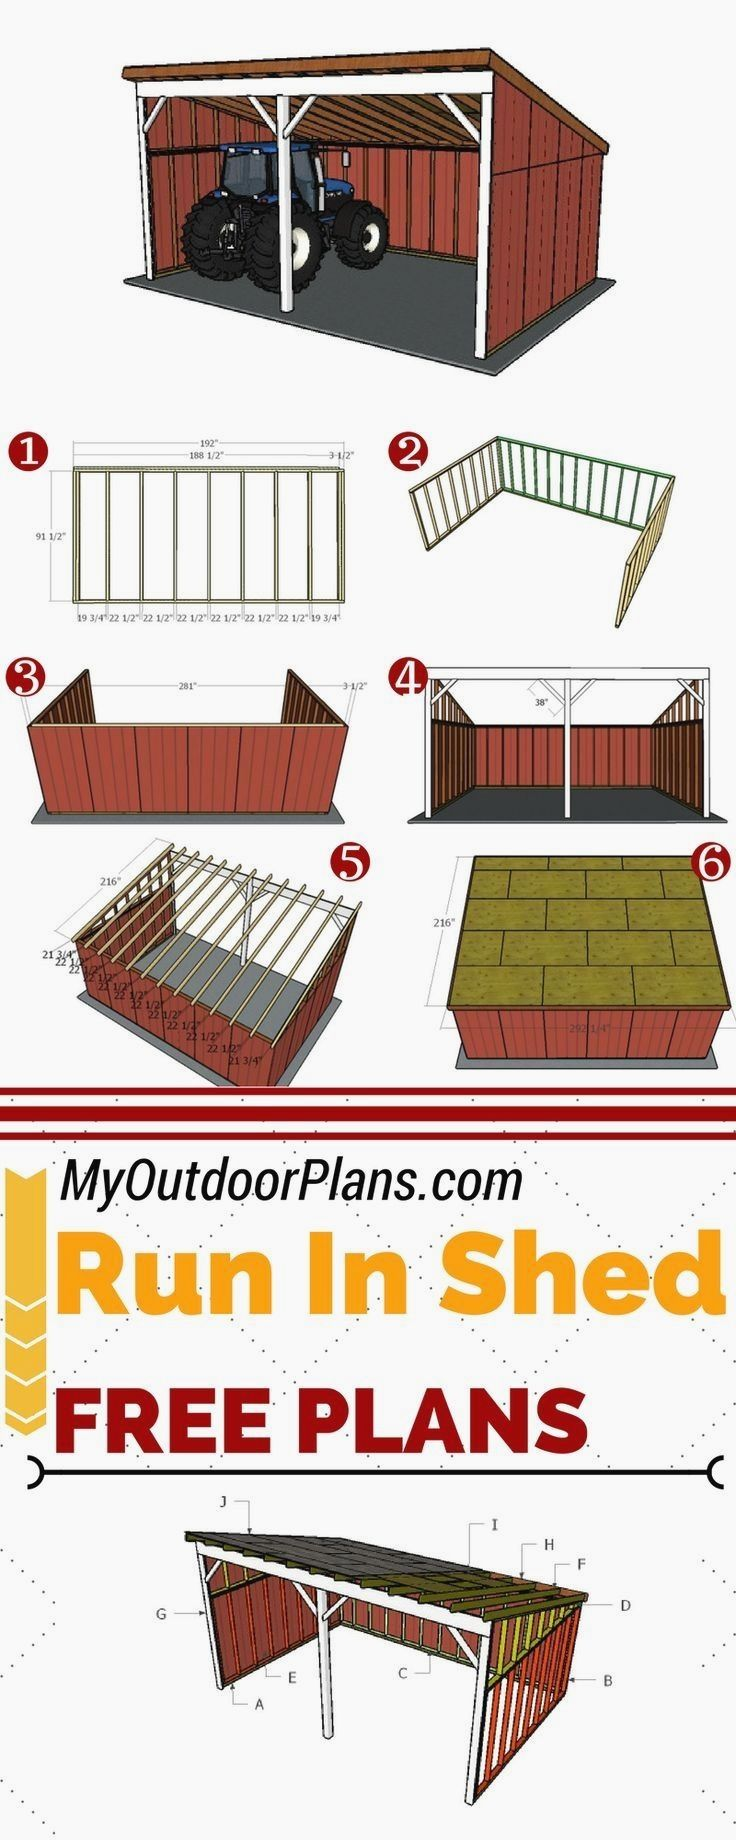 Finding the best shed blueprints check out the image for